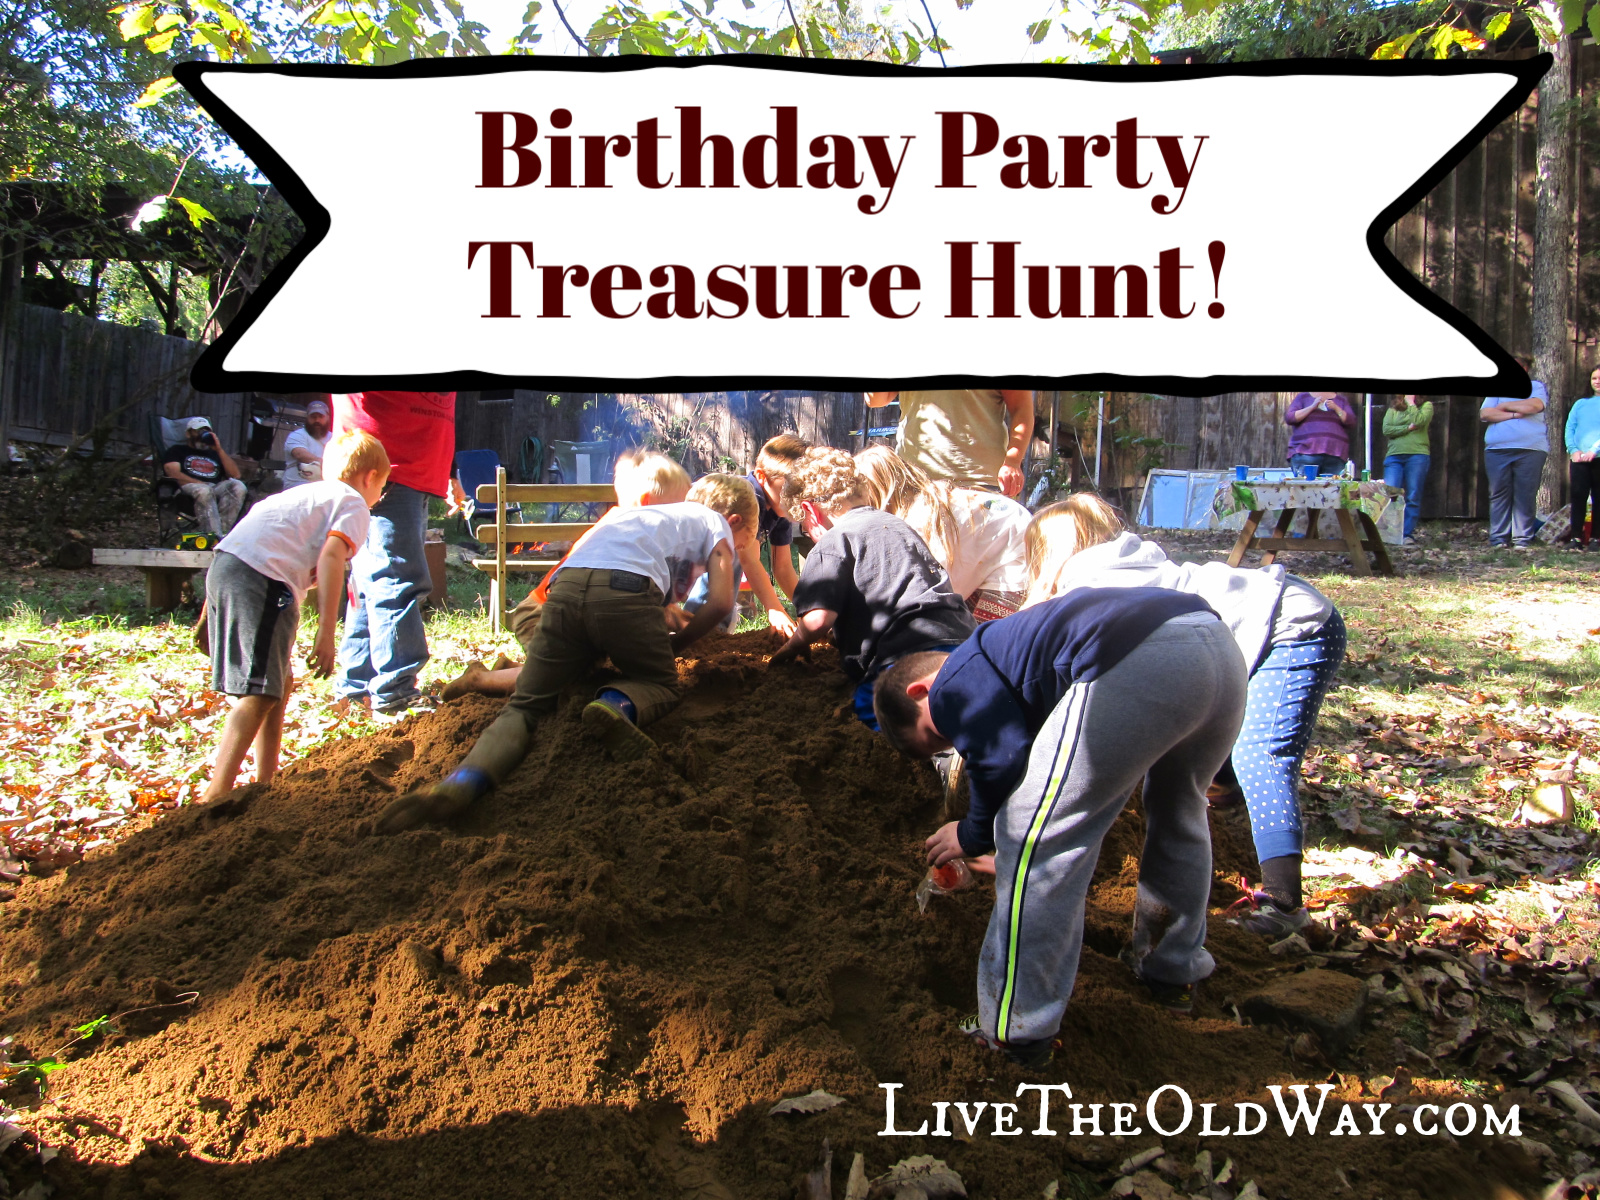 Birthday Party Treasure Hunt